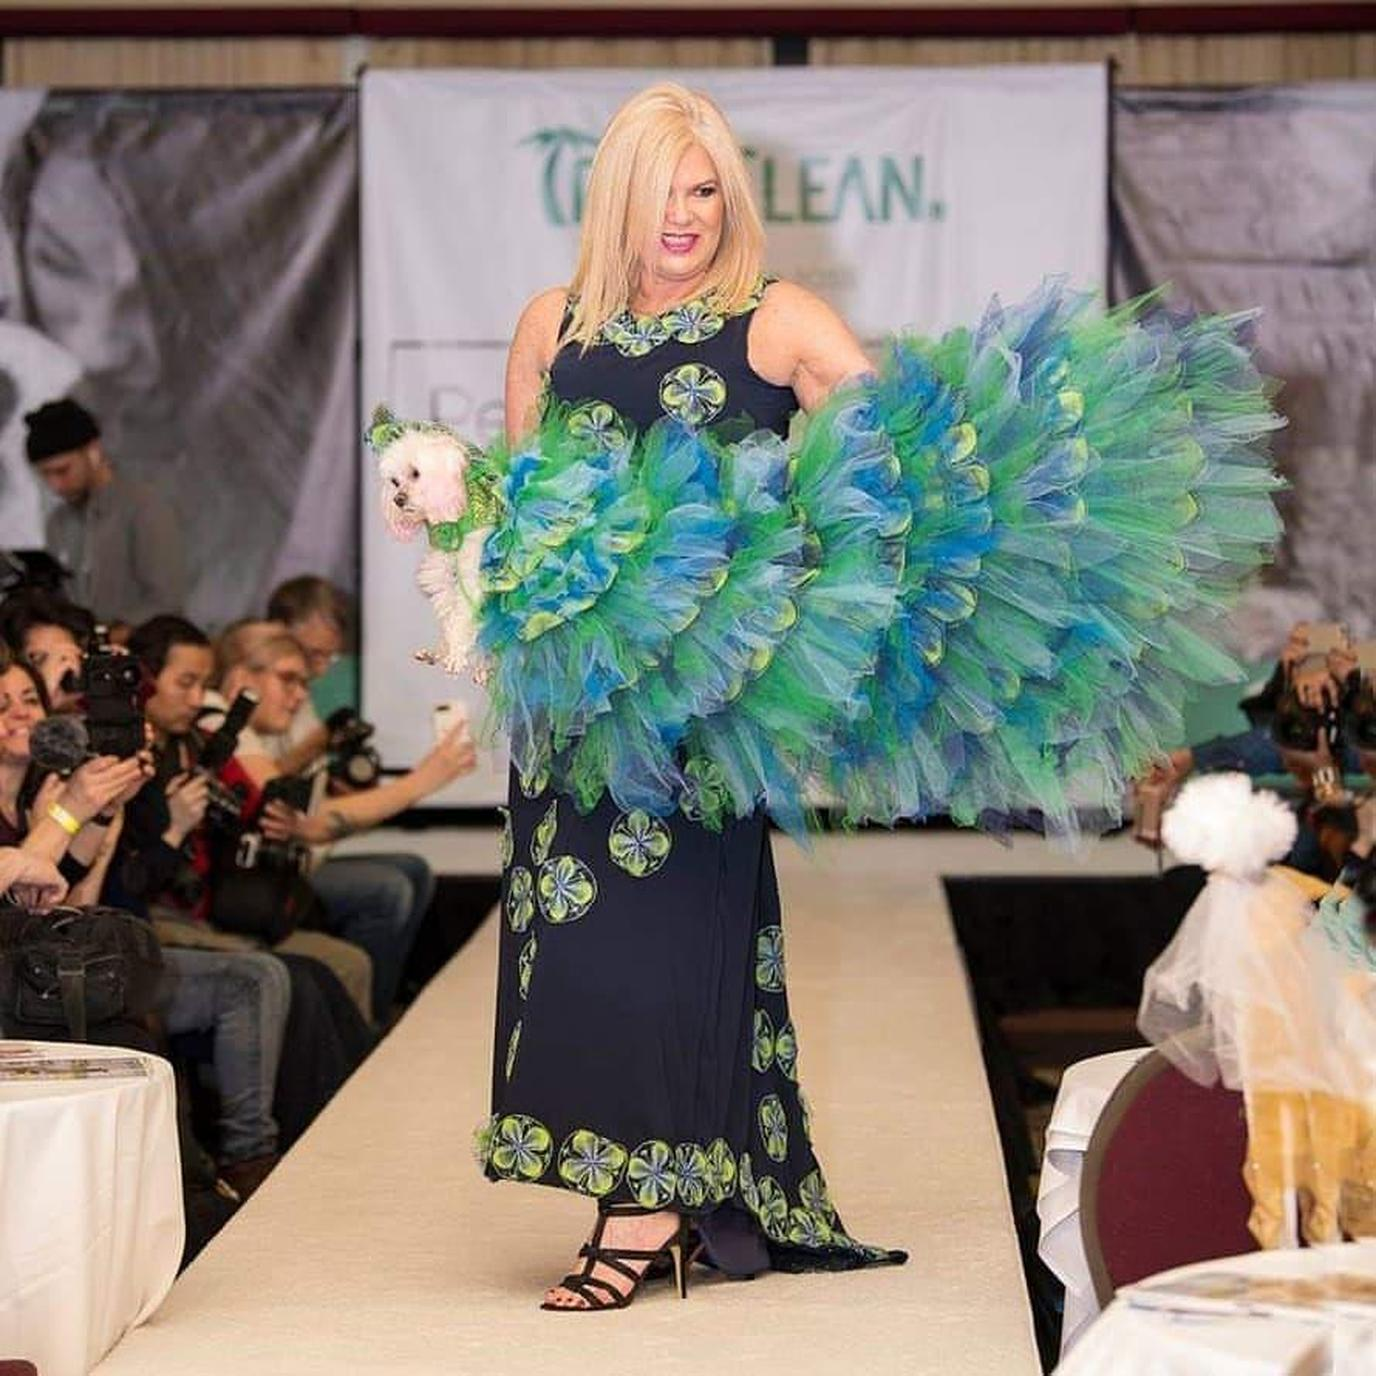 The annual New York Pet Fashion Show is the world's largest pet fashion and animal rescue benefit.